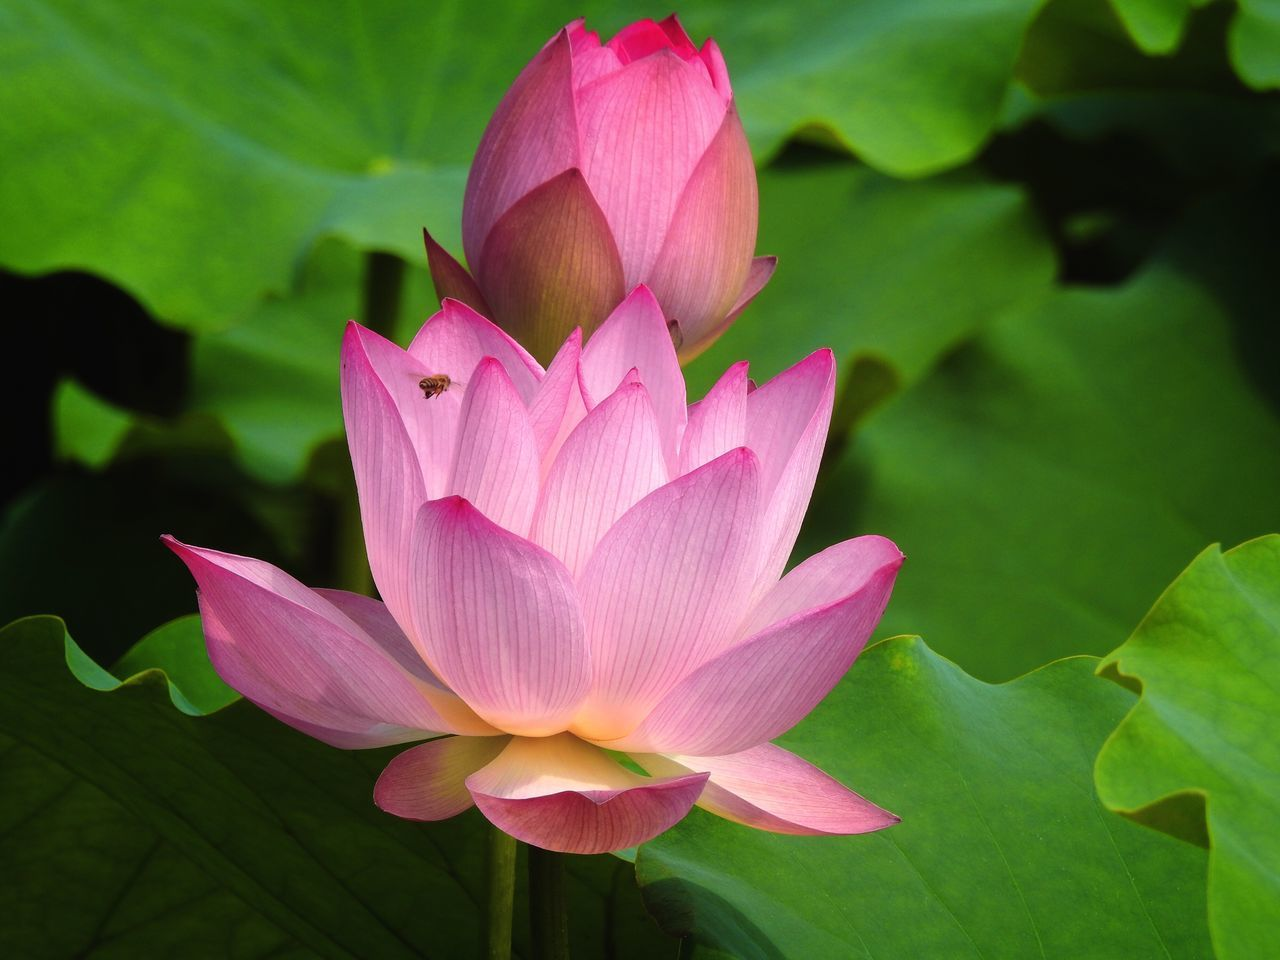 flower, petal, beauty in nature, flower head, nature, fragility, lotus water lily, pink color, growth, lotus, leaf, freshness, plant, blooming, water lily, no people, day, close-up, outdoors